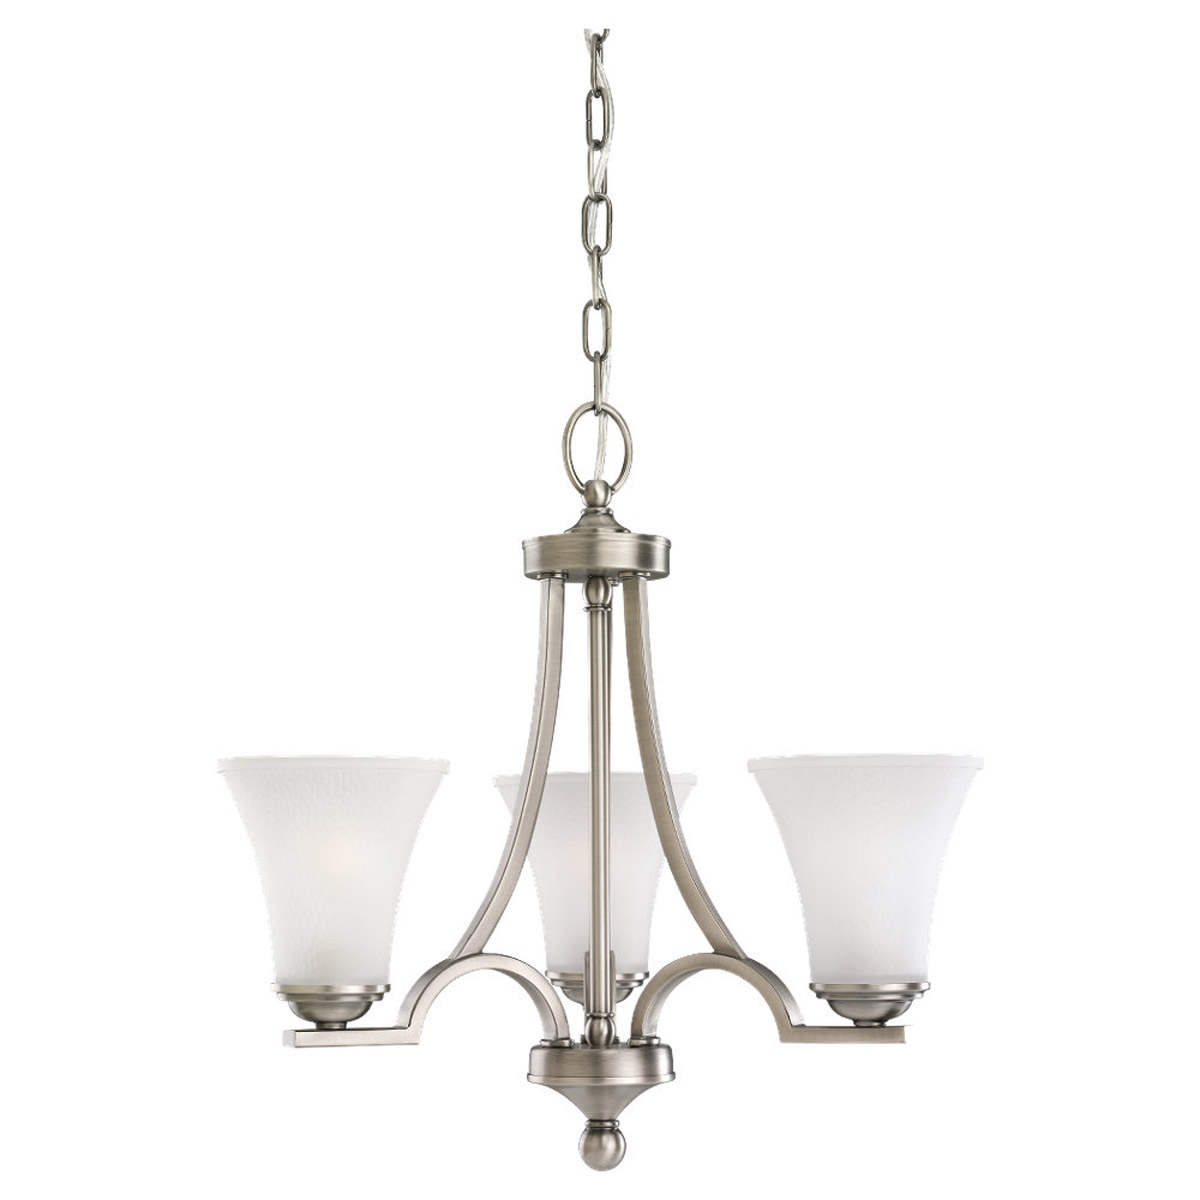 Sea Gull Lighting Somerton 3 Light Chandelier in Antique Brushed Nickel 31375-965